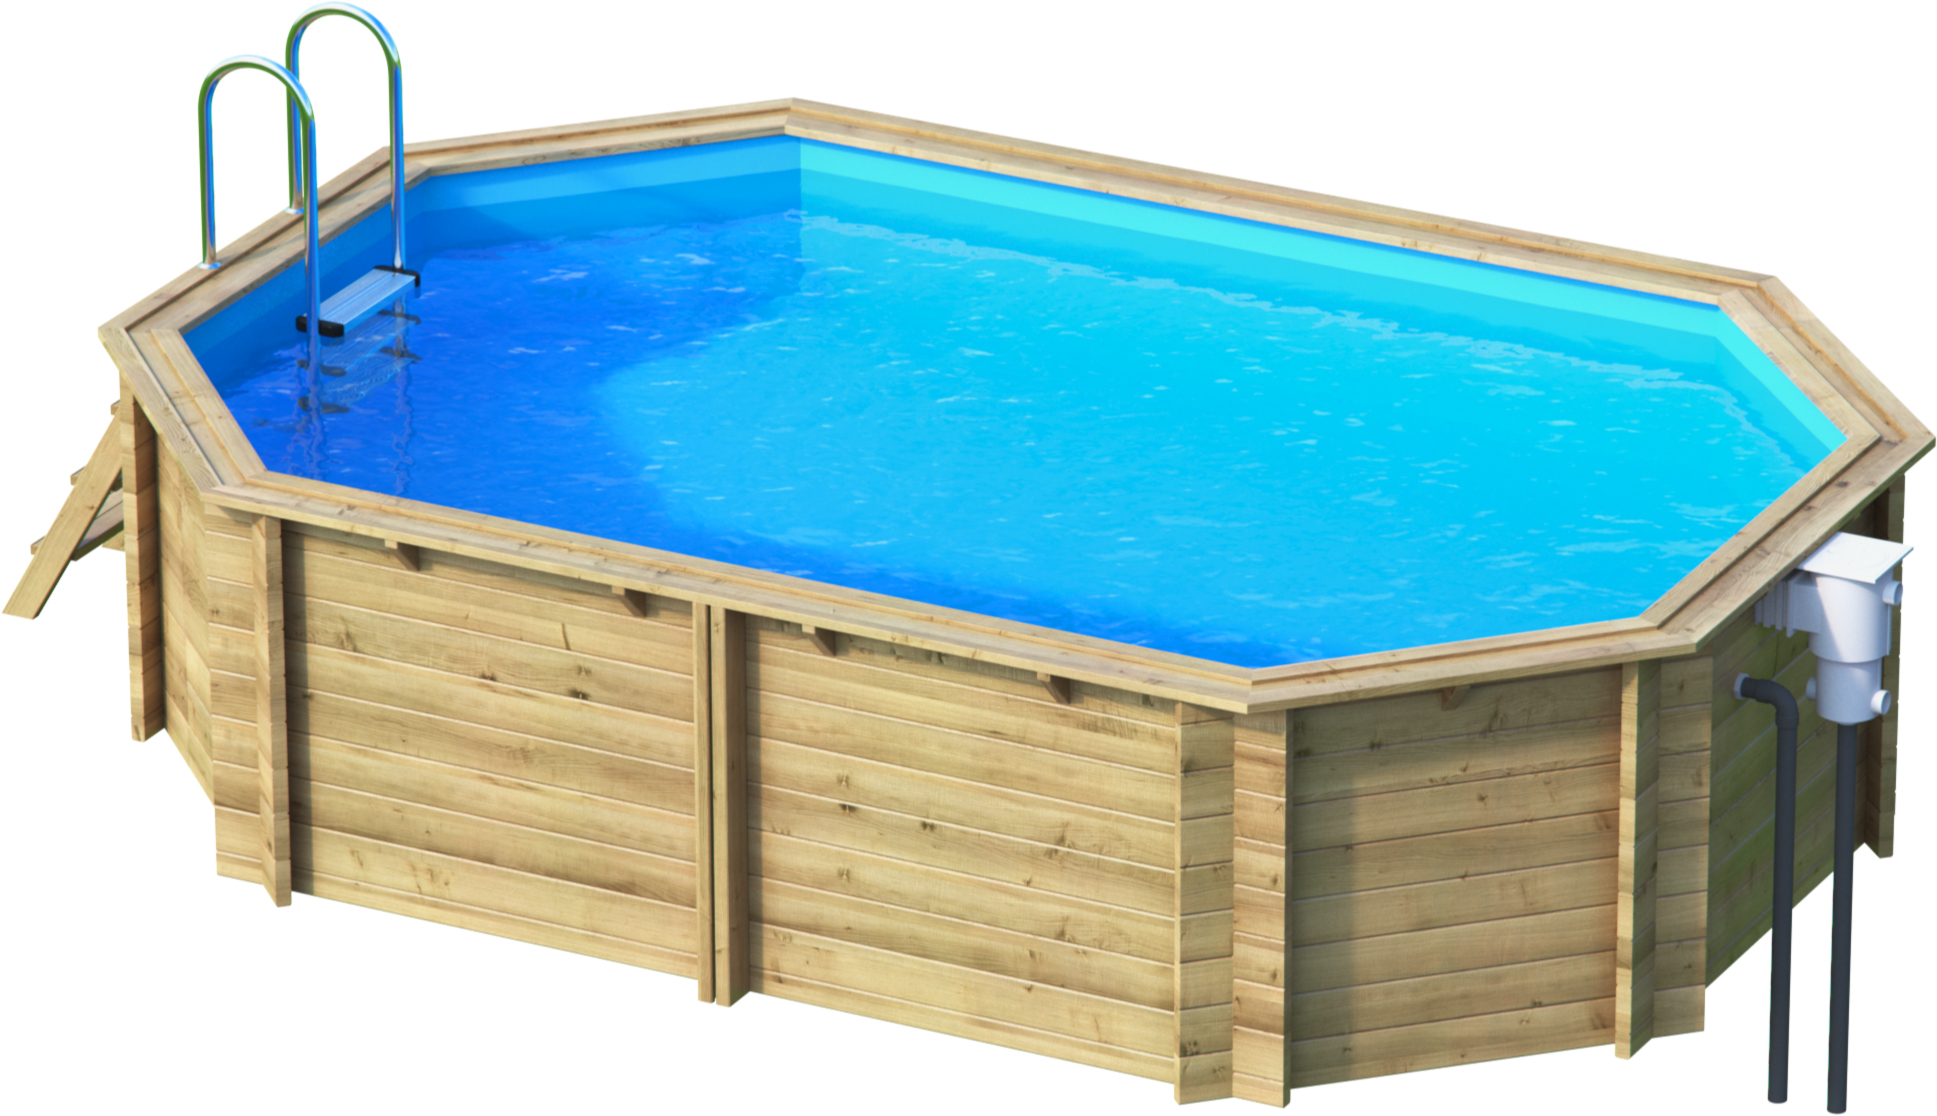 Tropic octo 510 holzpoolset bon pool for Piscine tropic octo 414